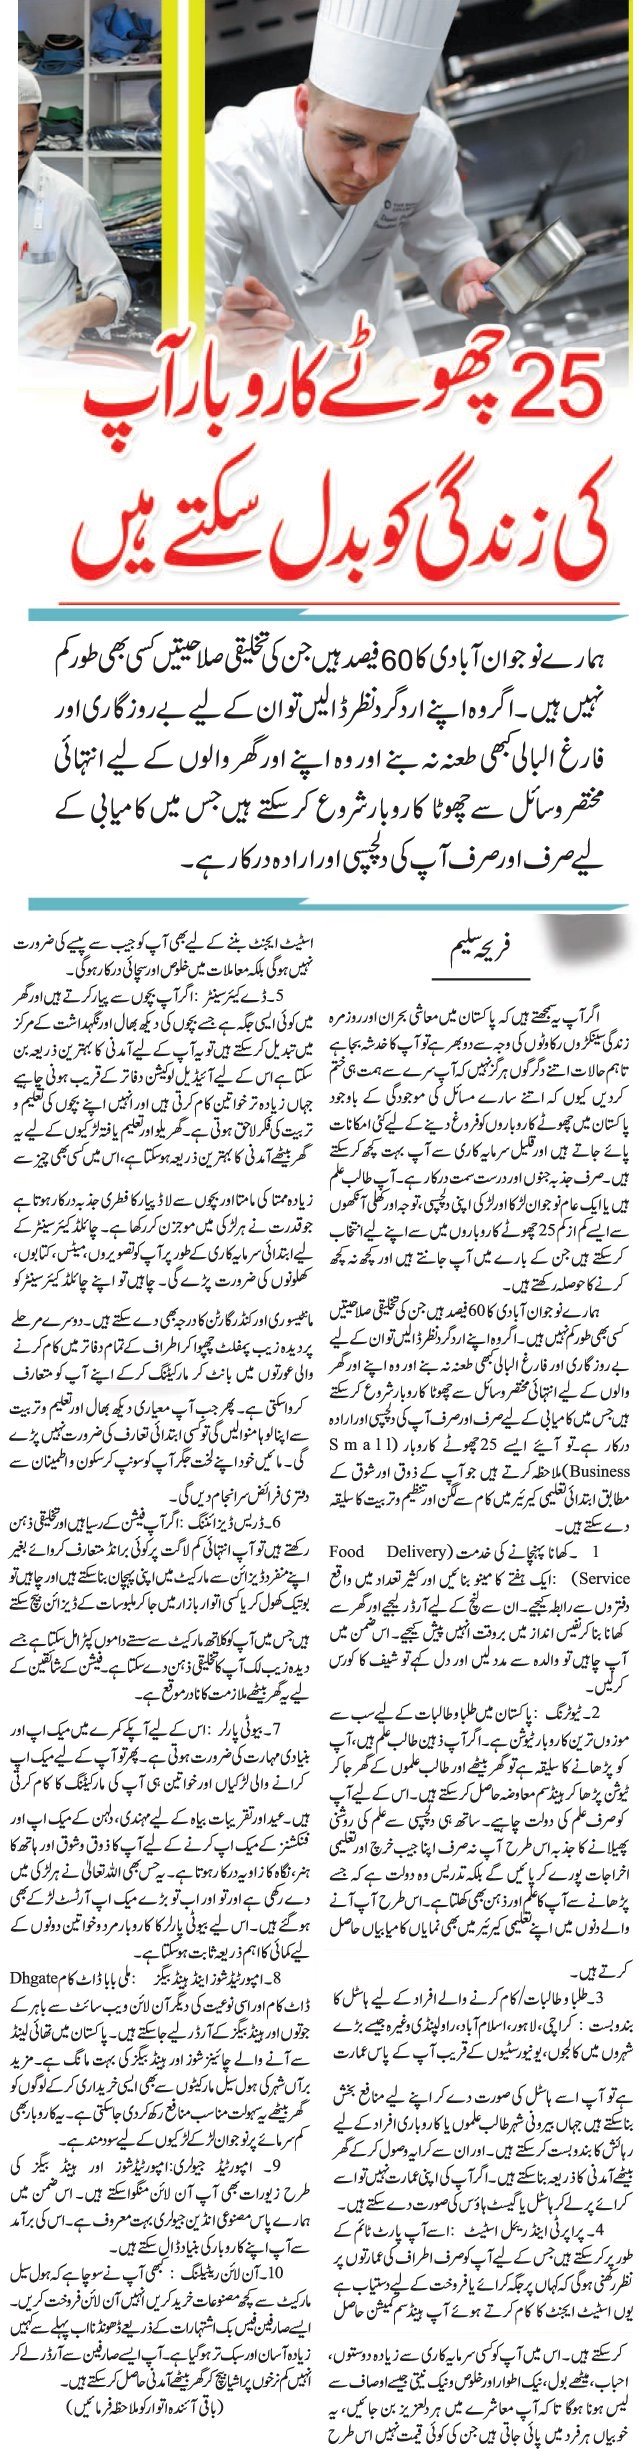 25 Small Business Ideas For Youth Of Pakistan In Urdu & English